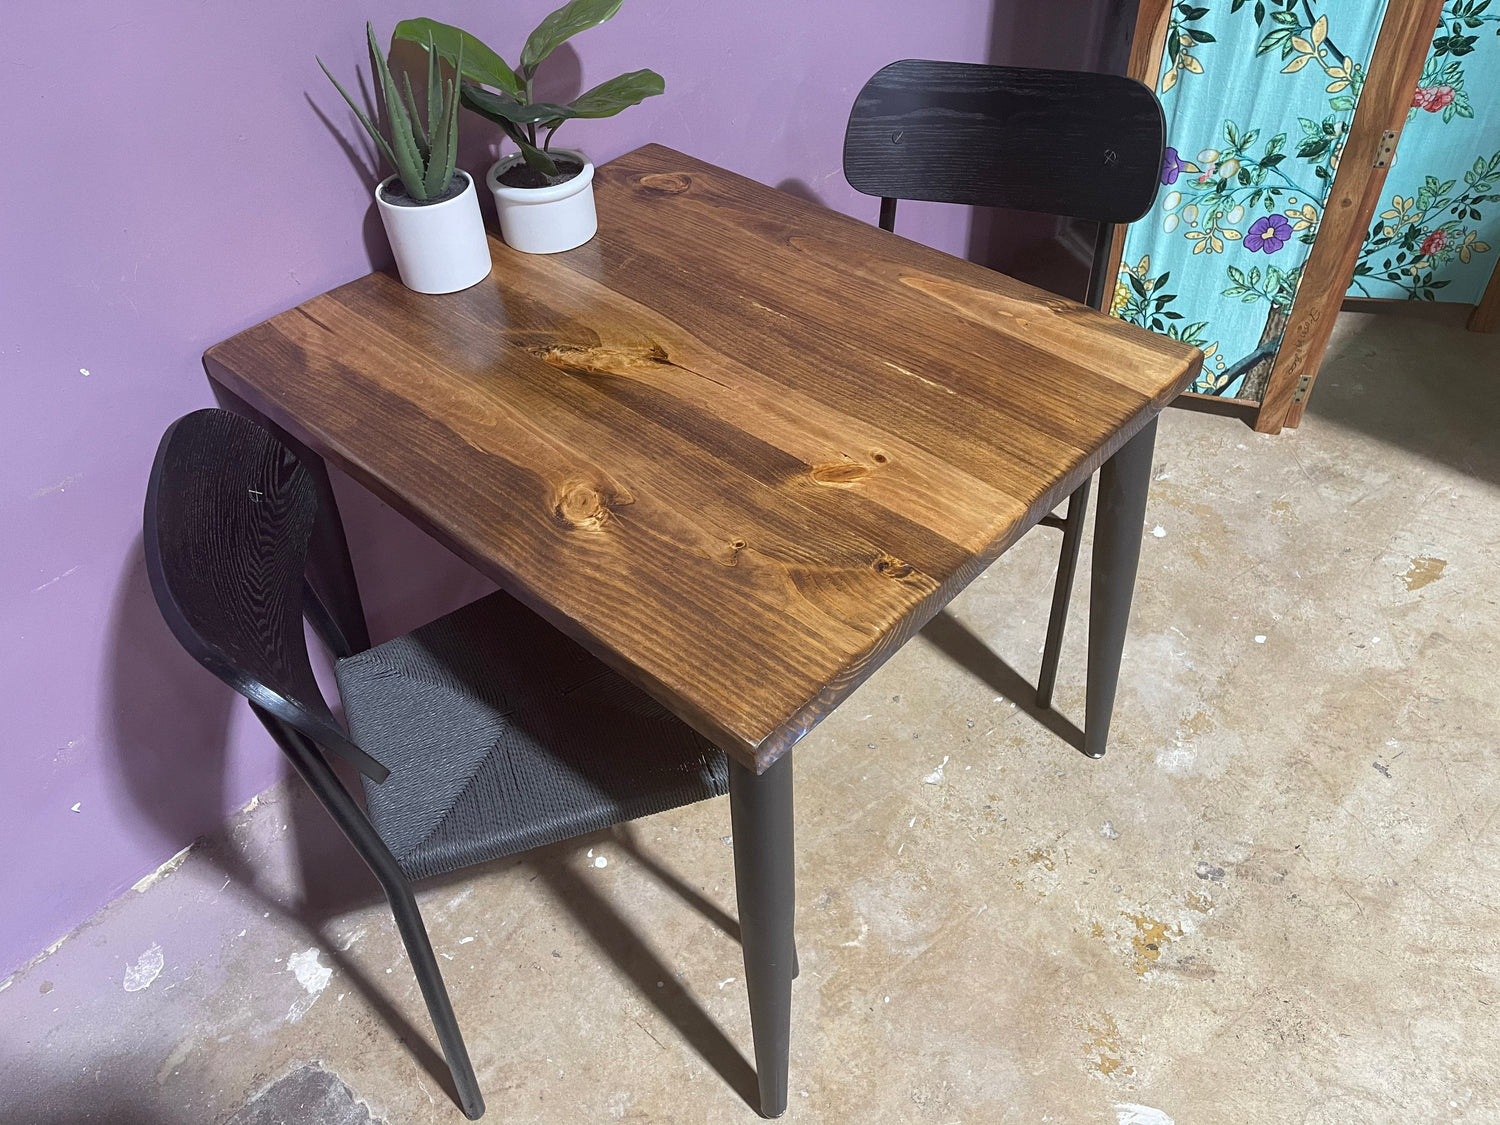 Small Dining Table - Apartment Dining Table for 2, Wood Dining Table